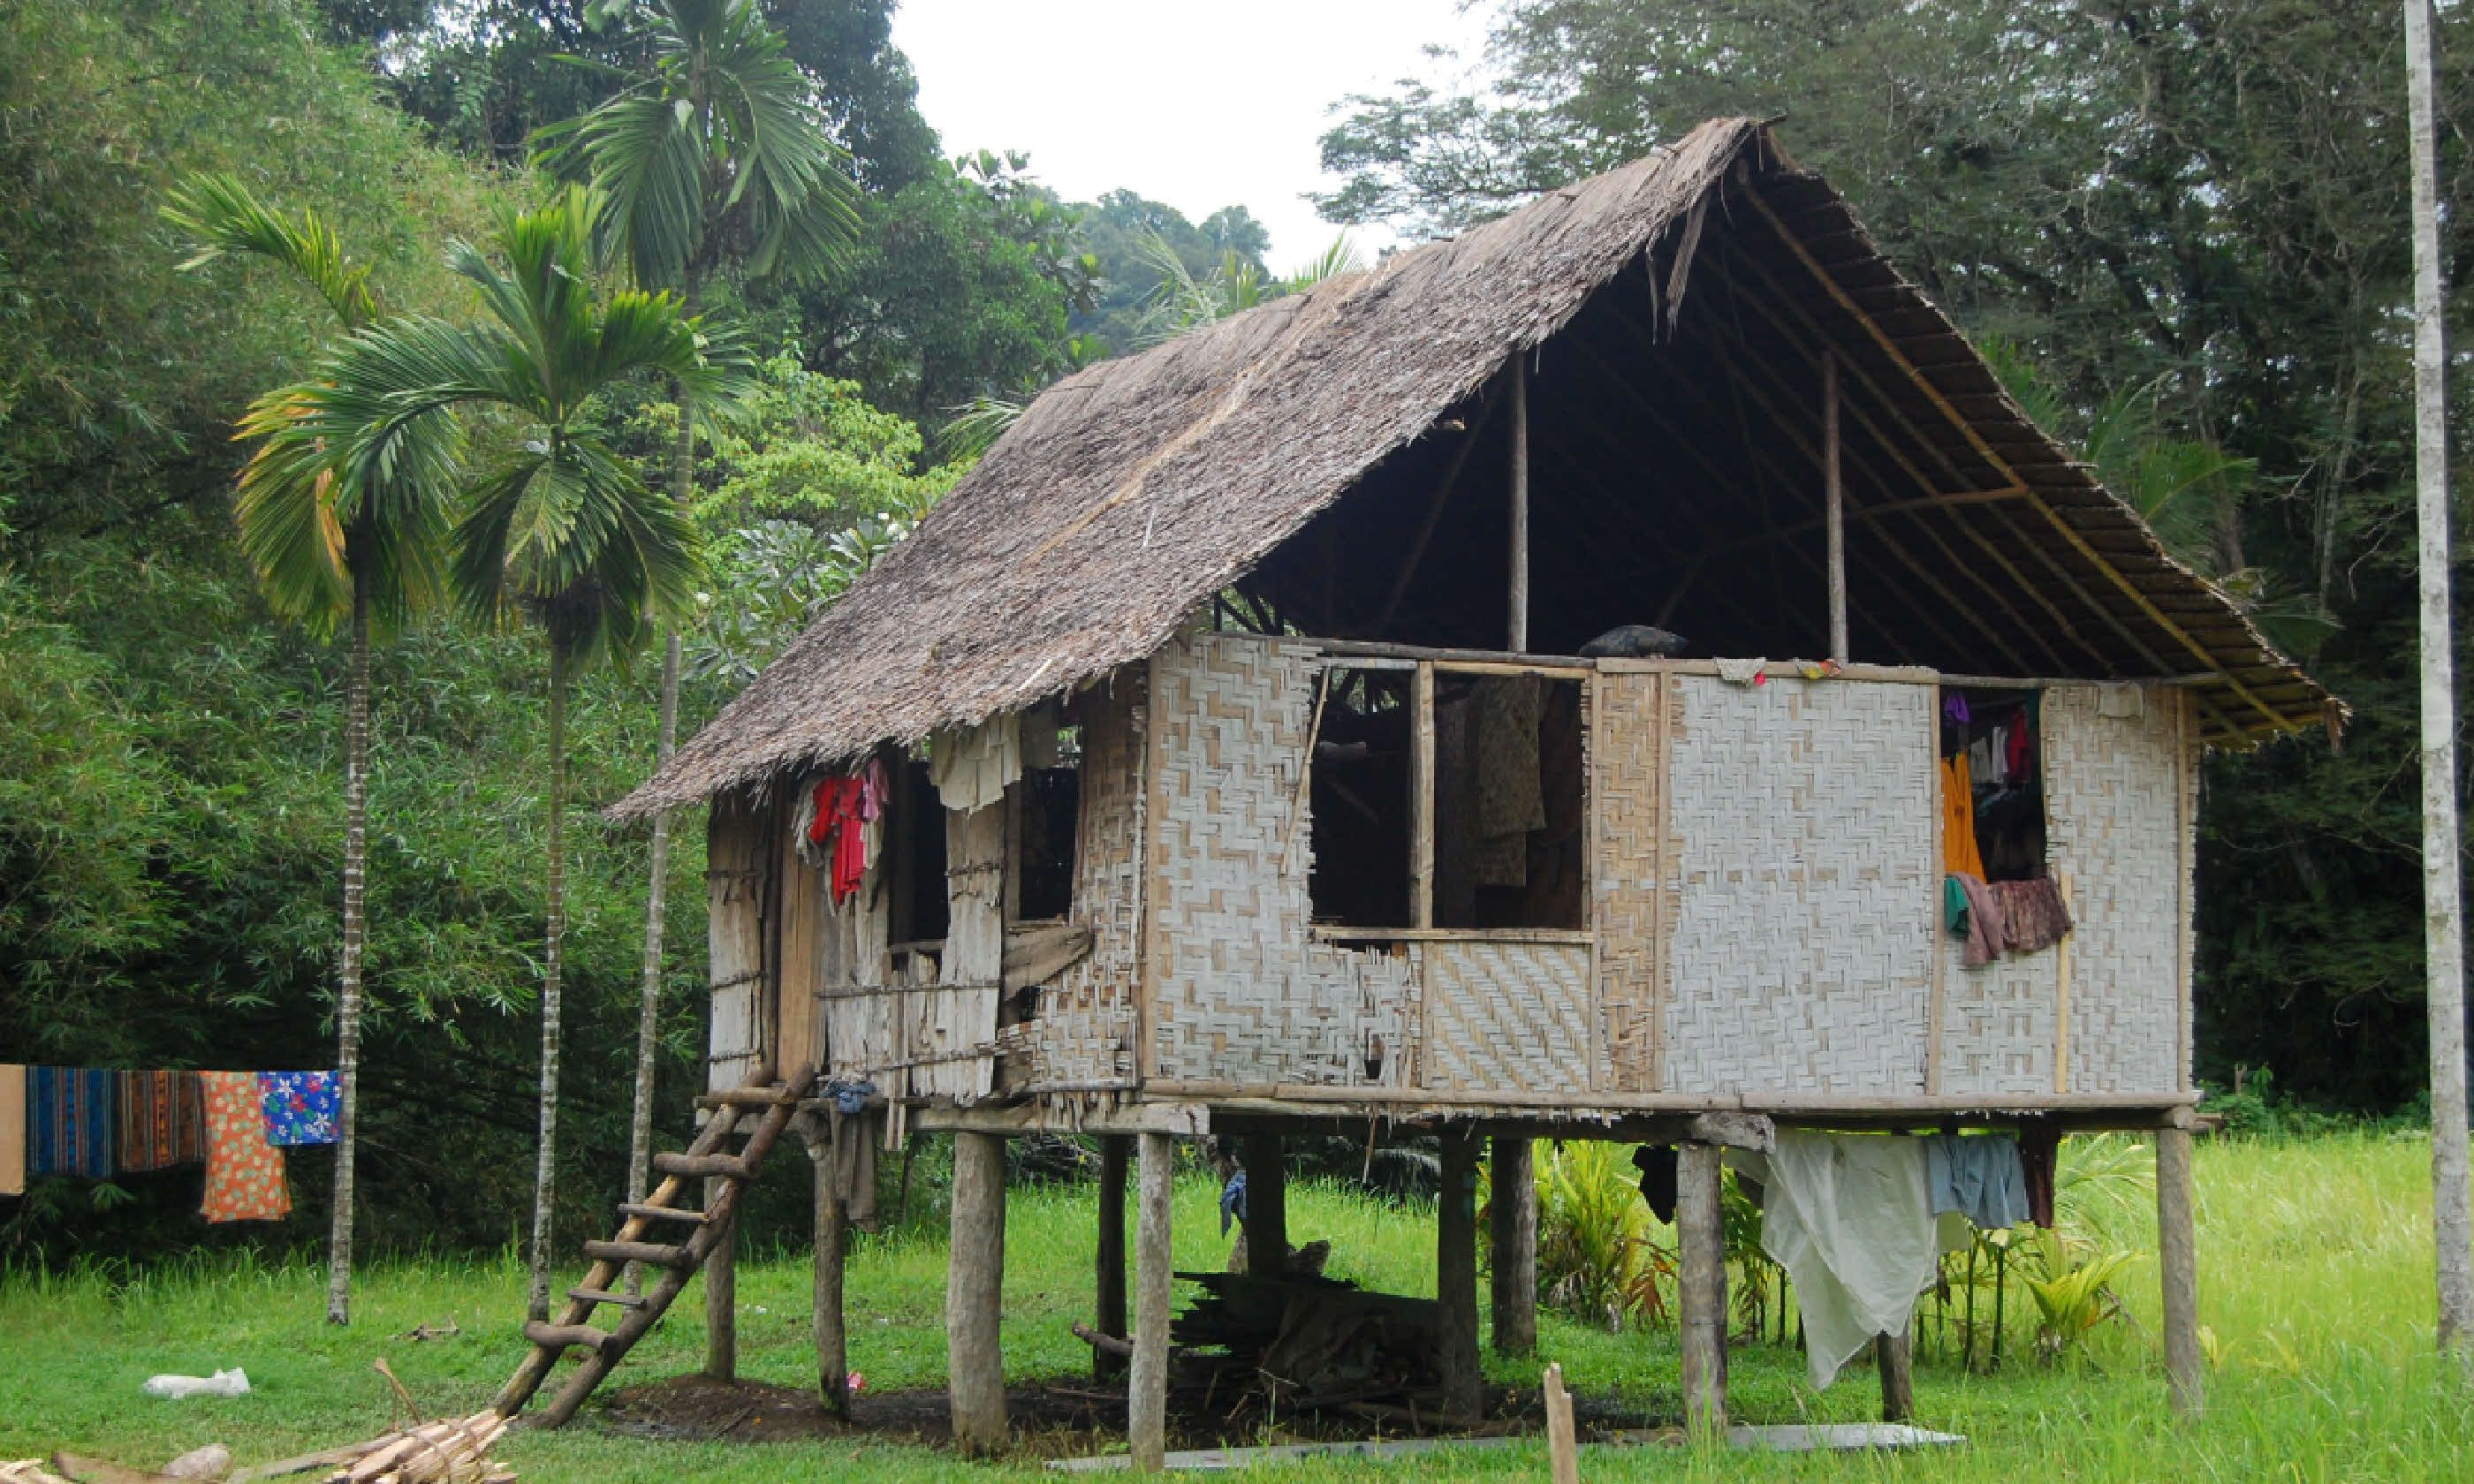 Village House, Papua New Guinea (Shutterstock)